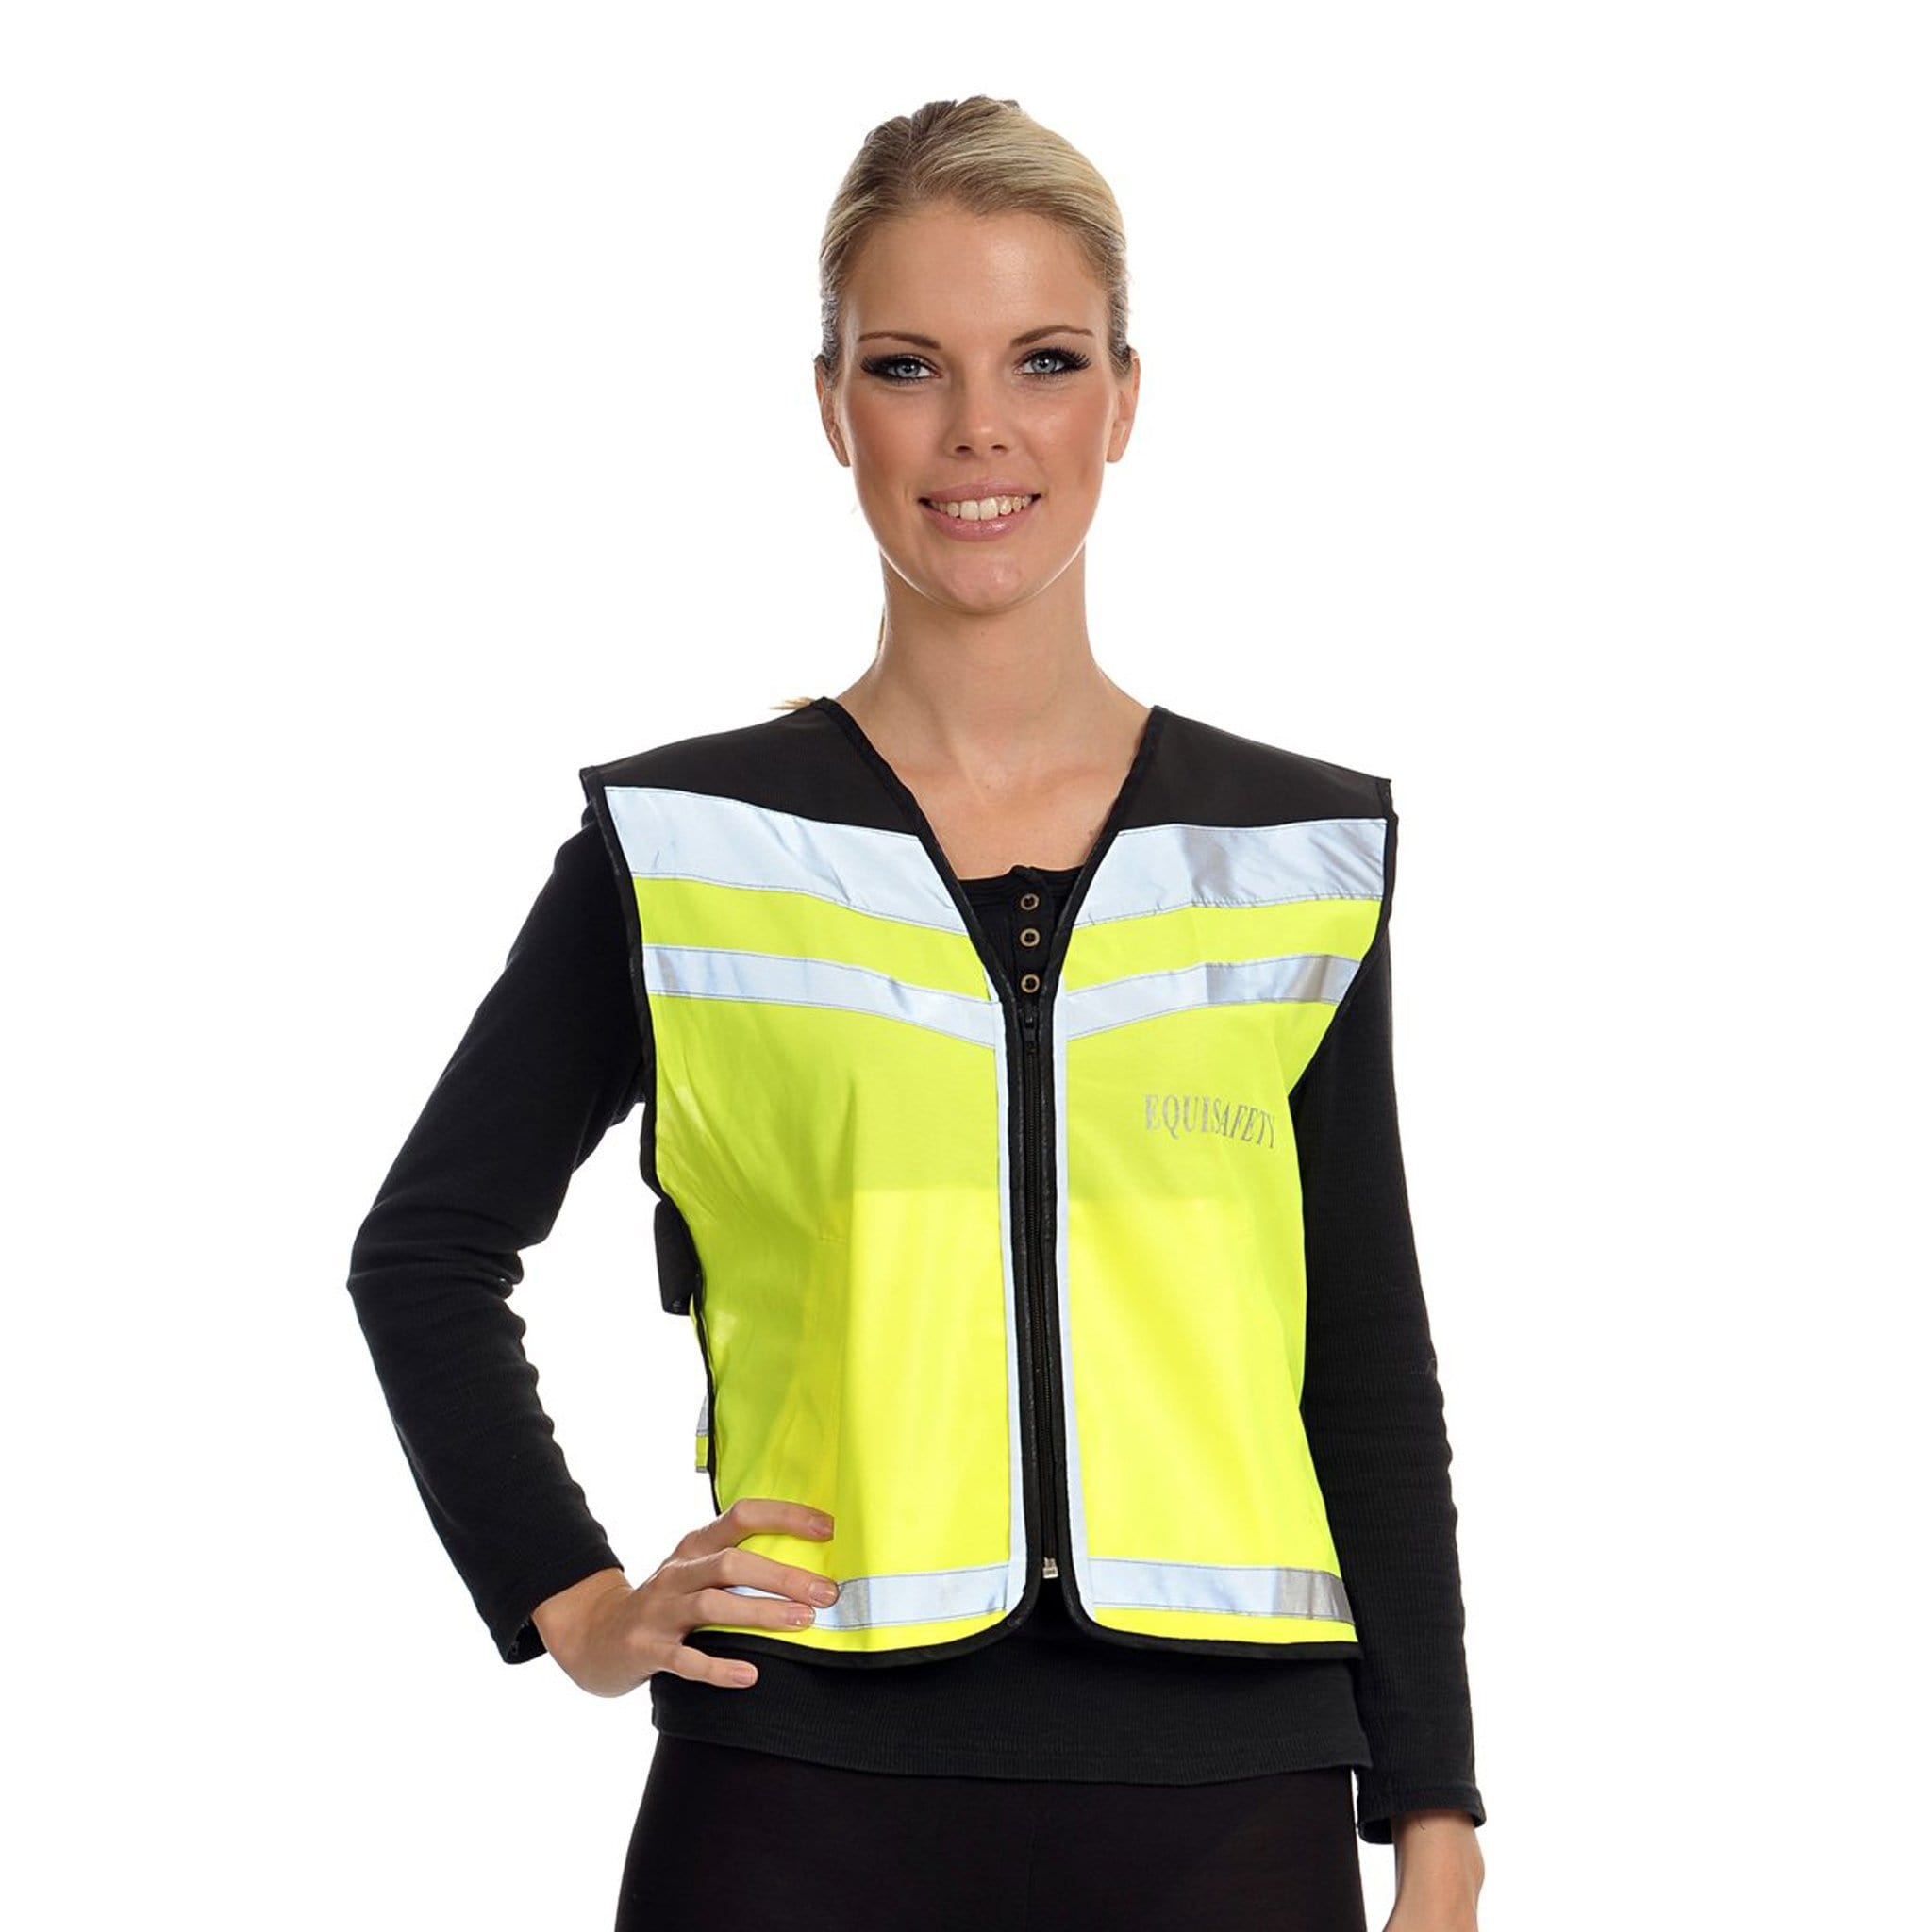 Equisafety Air Waistcoat Yellow Female Model Front View AWPL0